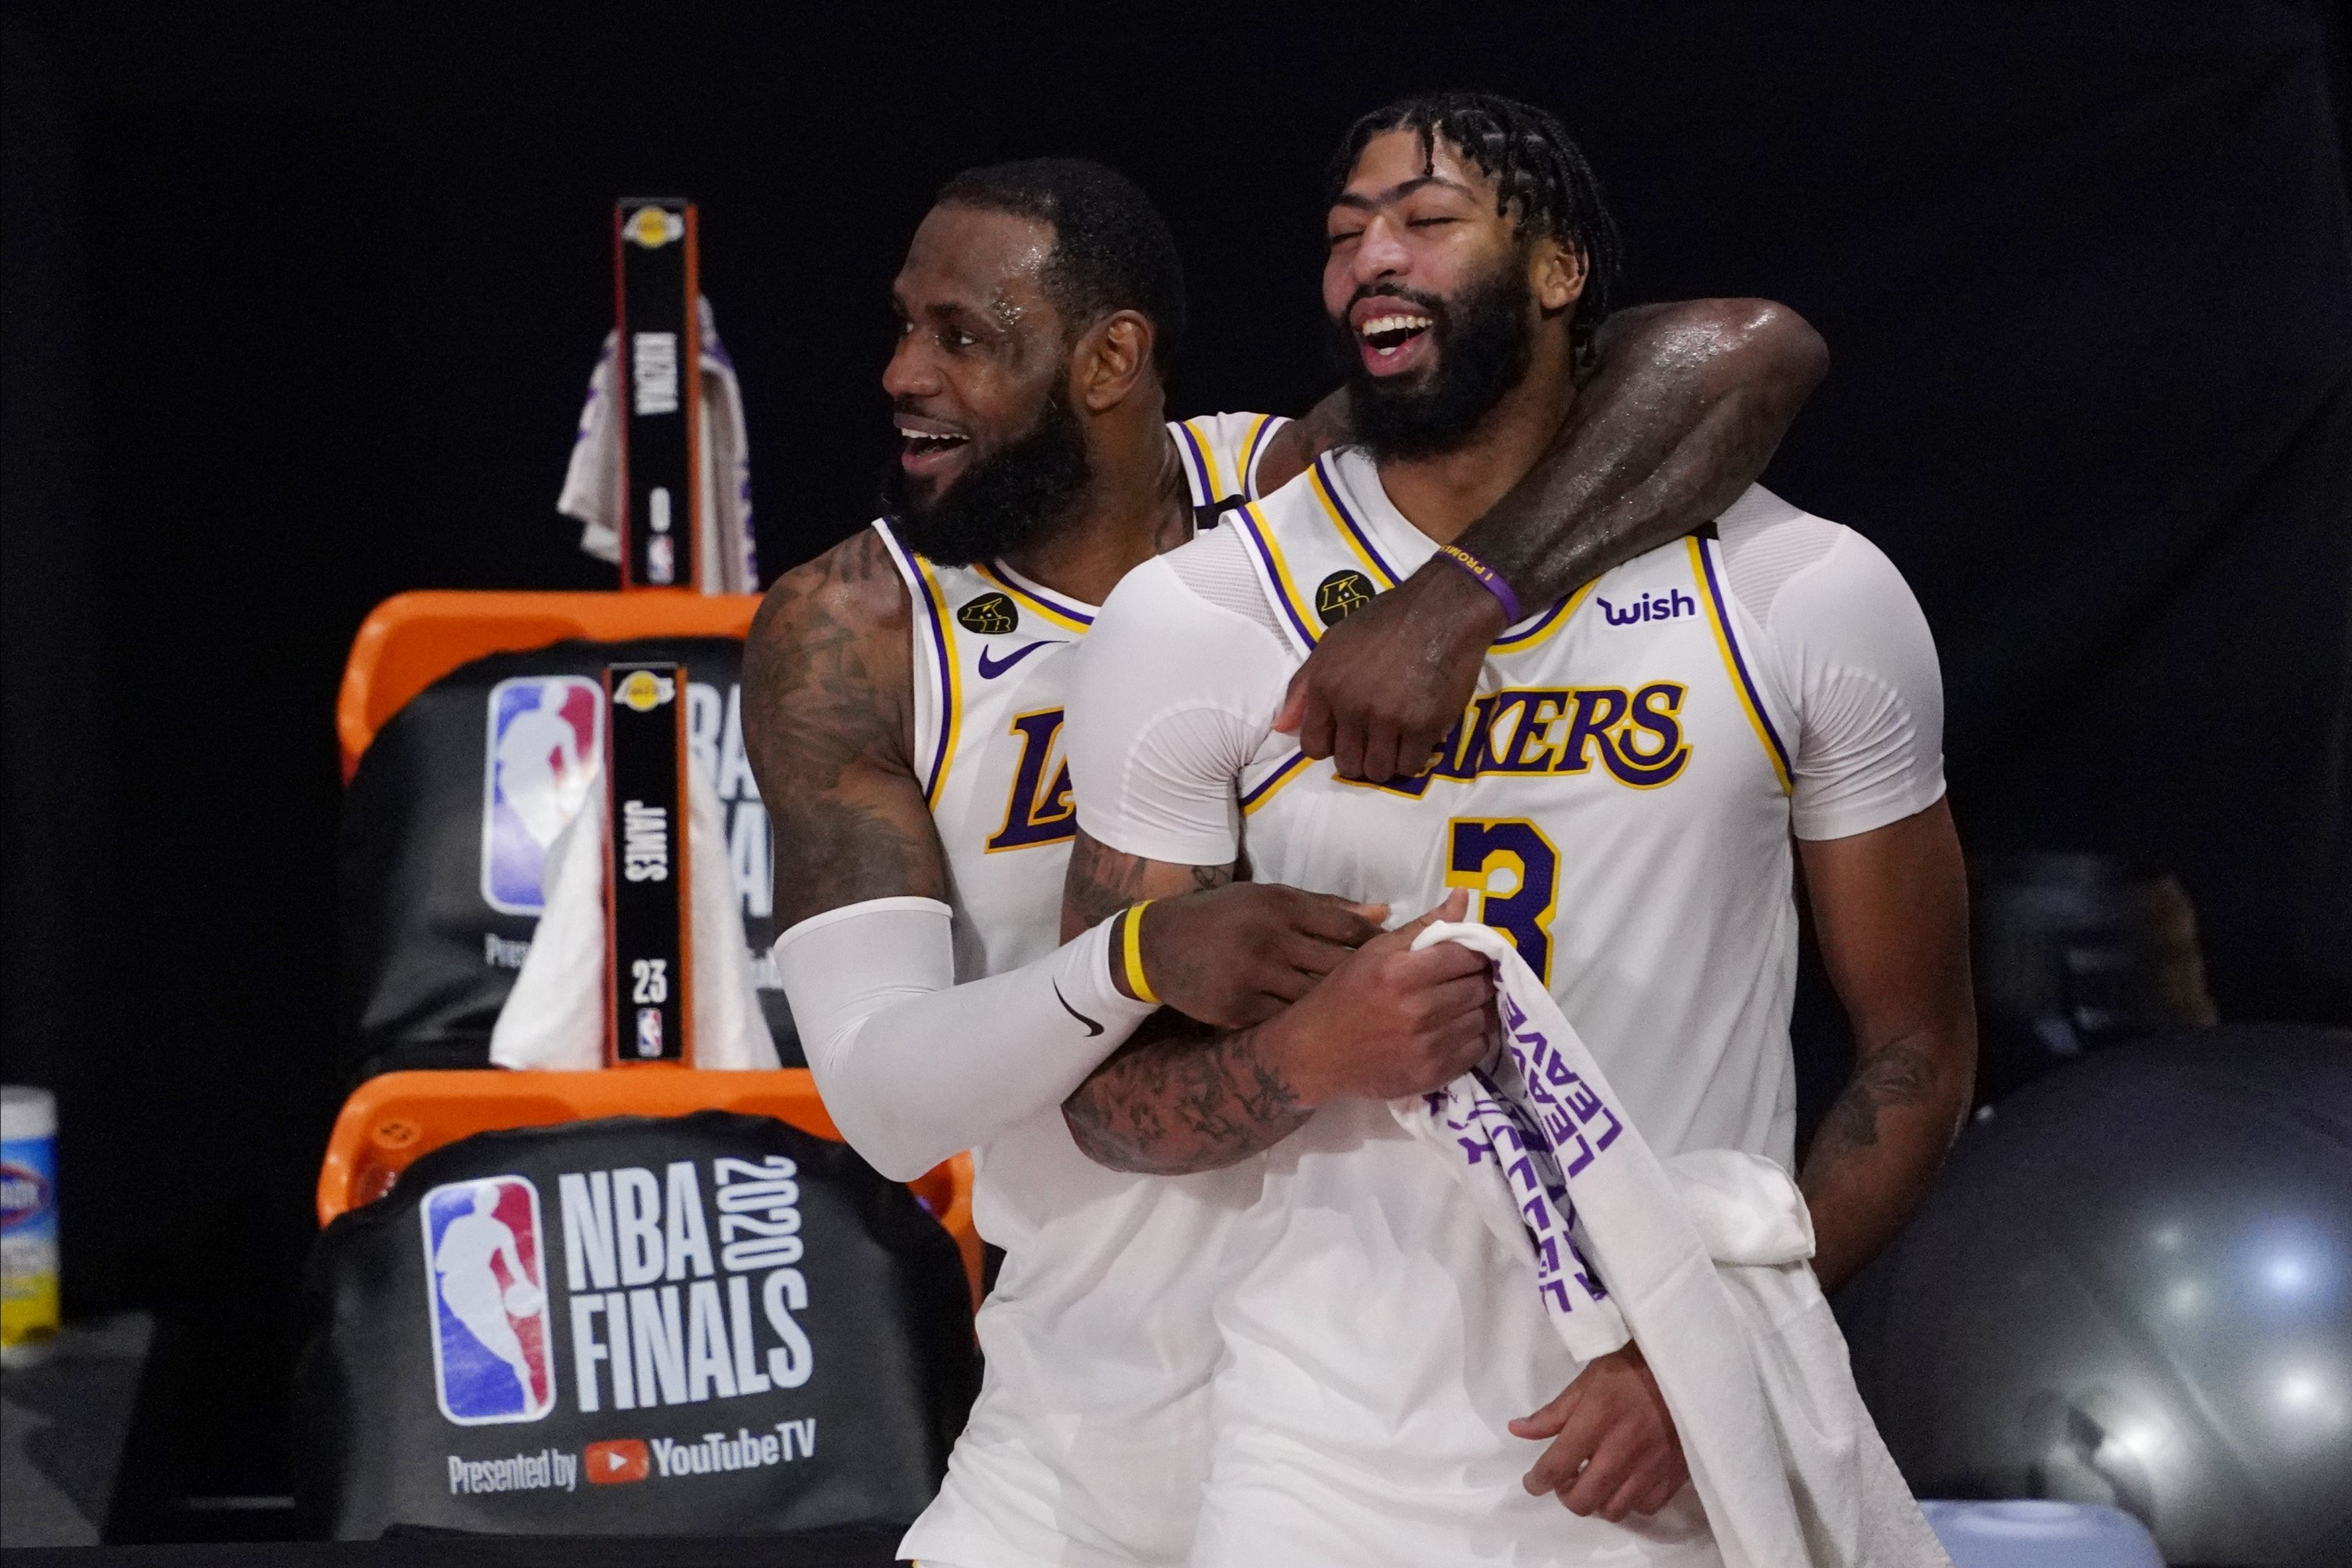 Los Angeles Lakers' LeBron James (L) and Anthony Davis celebrate after defeating the Miami Heat in Game 6 of NBA Finals, in Lake Buena Vista, Florida, U.S., Oct. 11, 2020. (AP Photo)